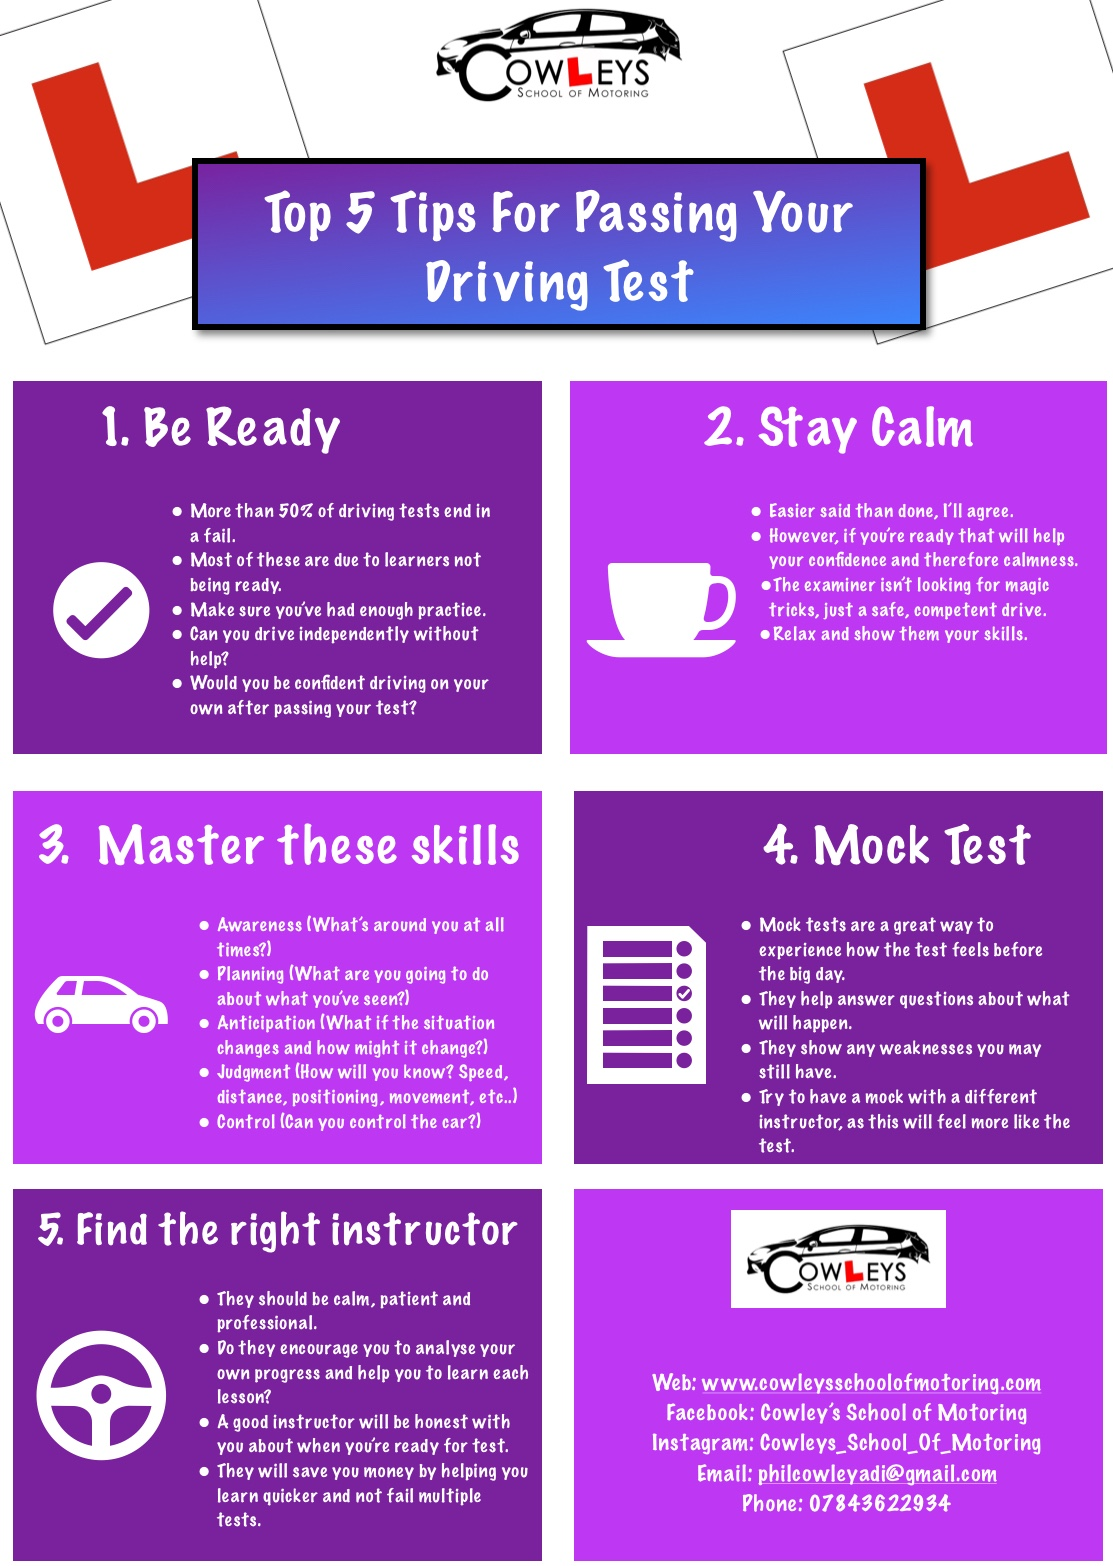 Top Tips for your Driving Test